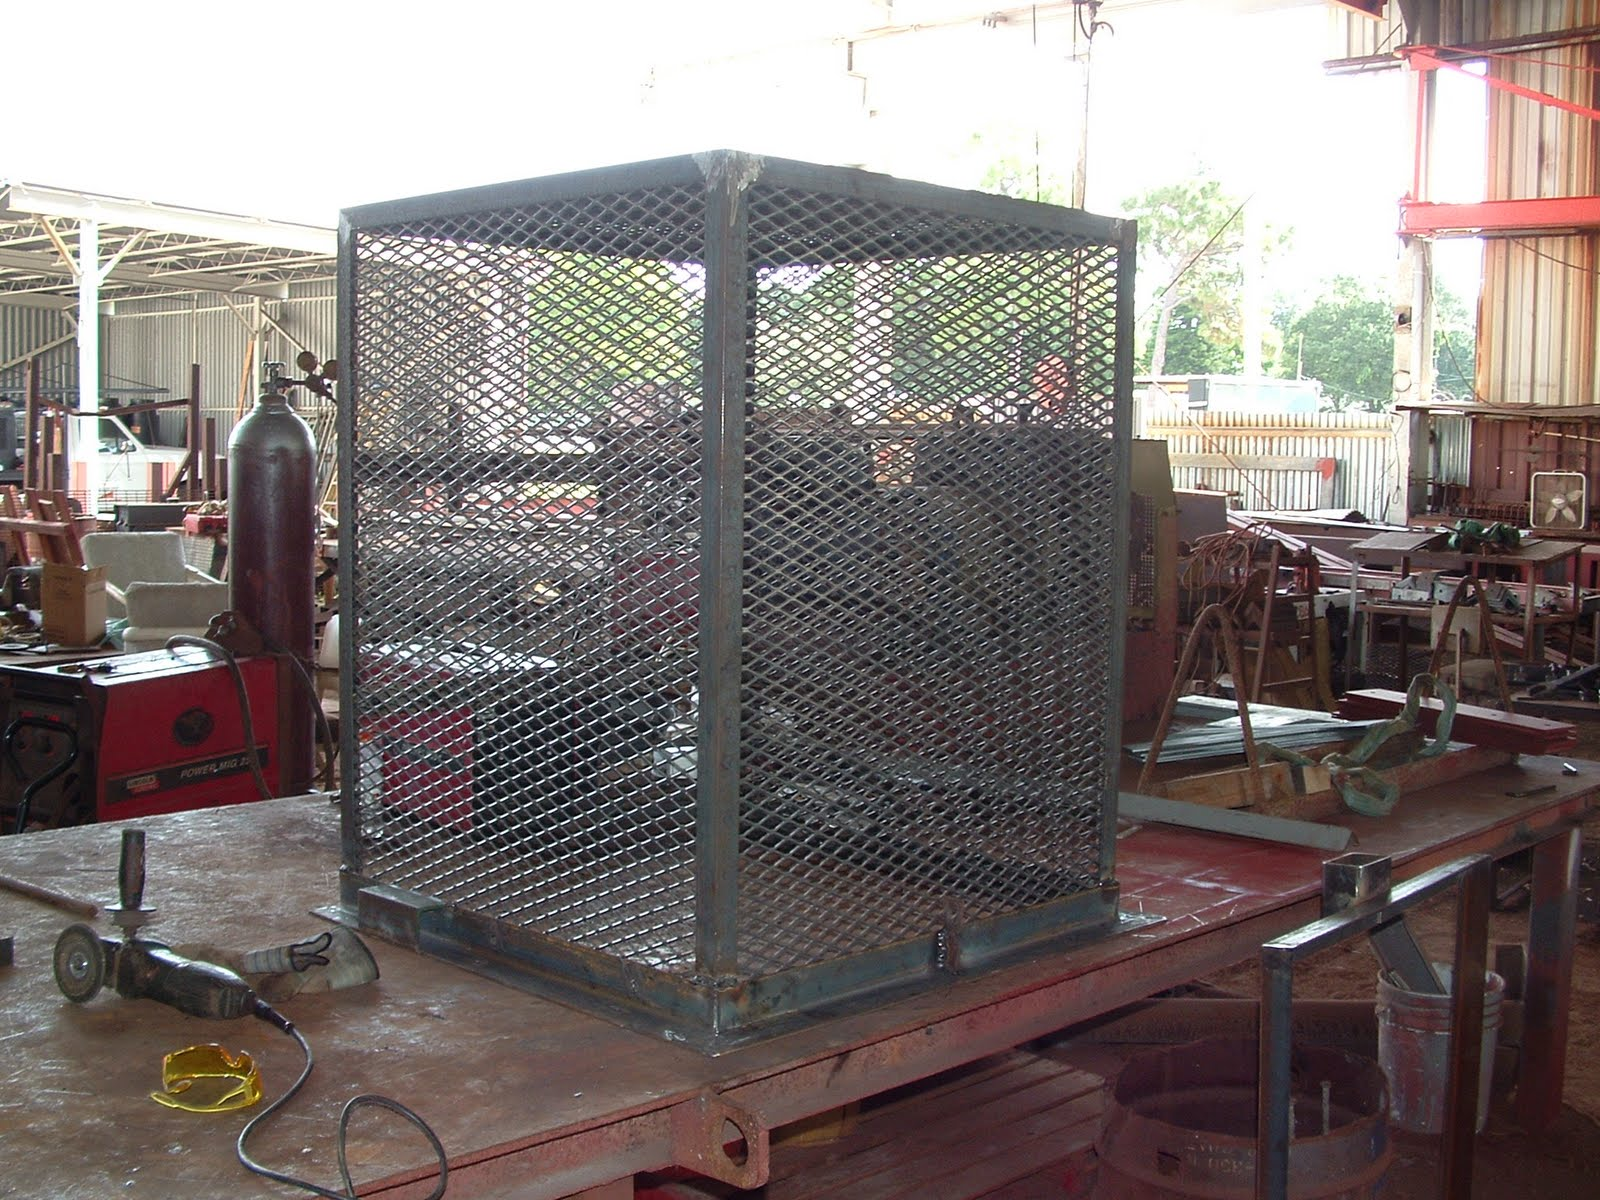 Air Conditioner Cage 2005 F150 4x4 Wiring Diagram Orange State Steel Construction Inc Protective Metal Cages